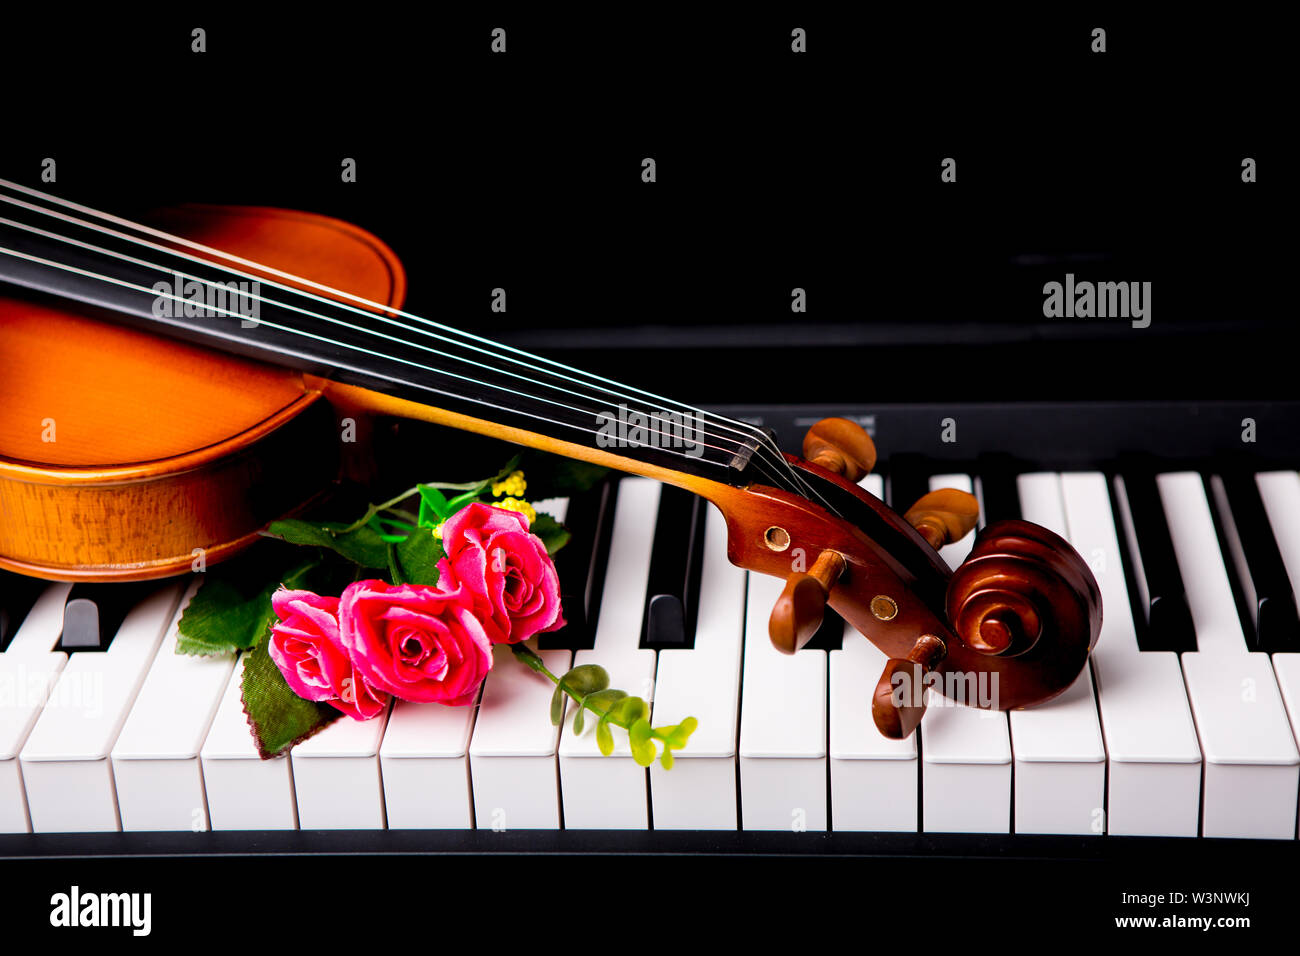 Violin on the piano on a black background - Stock Image